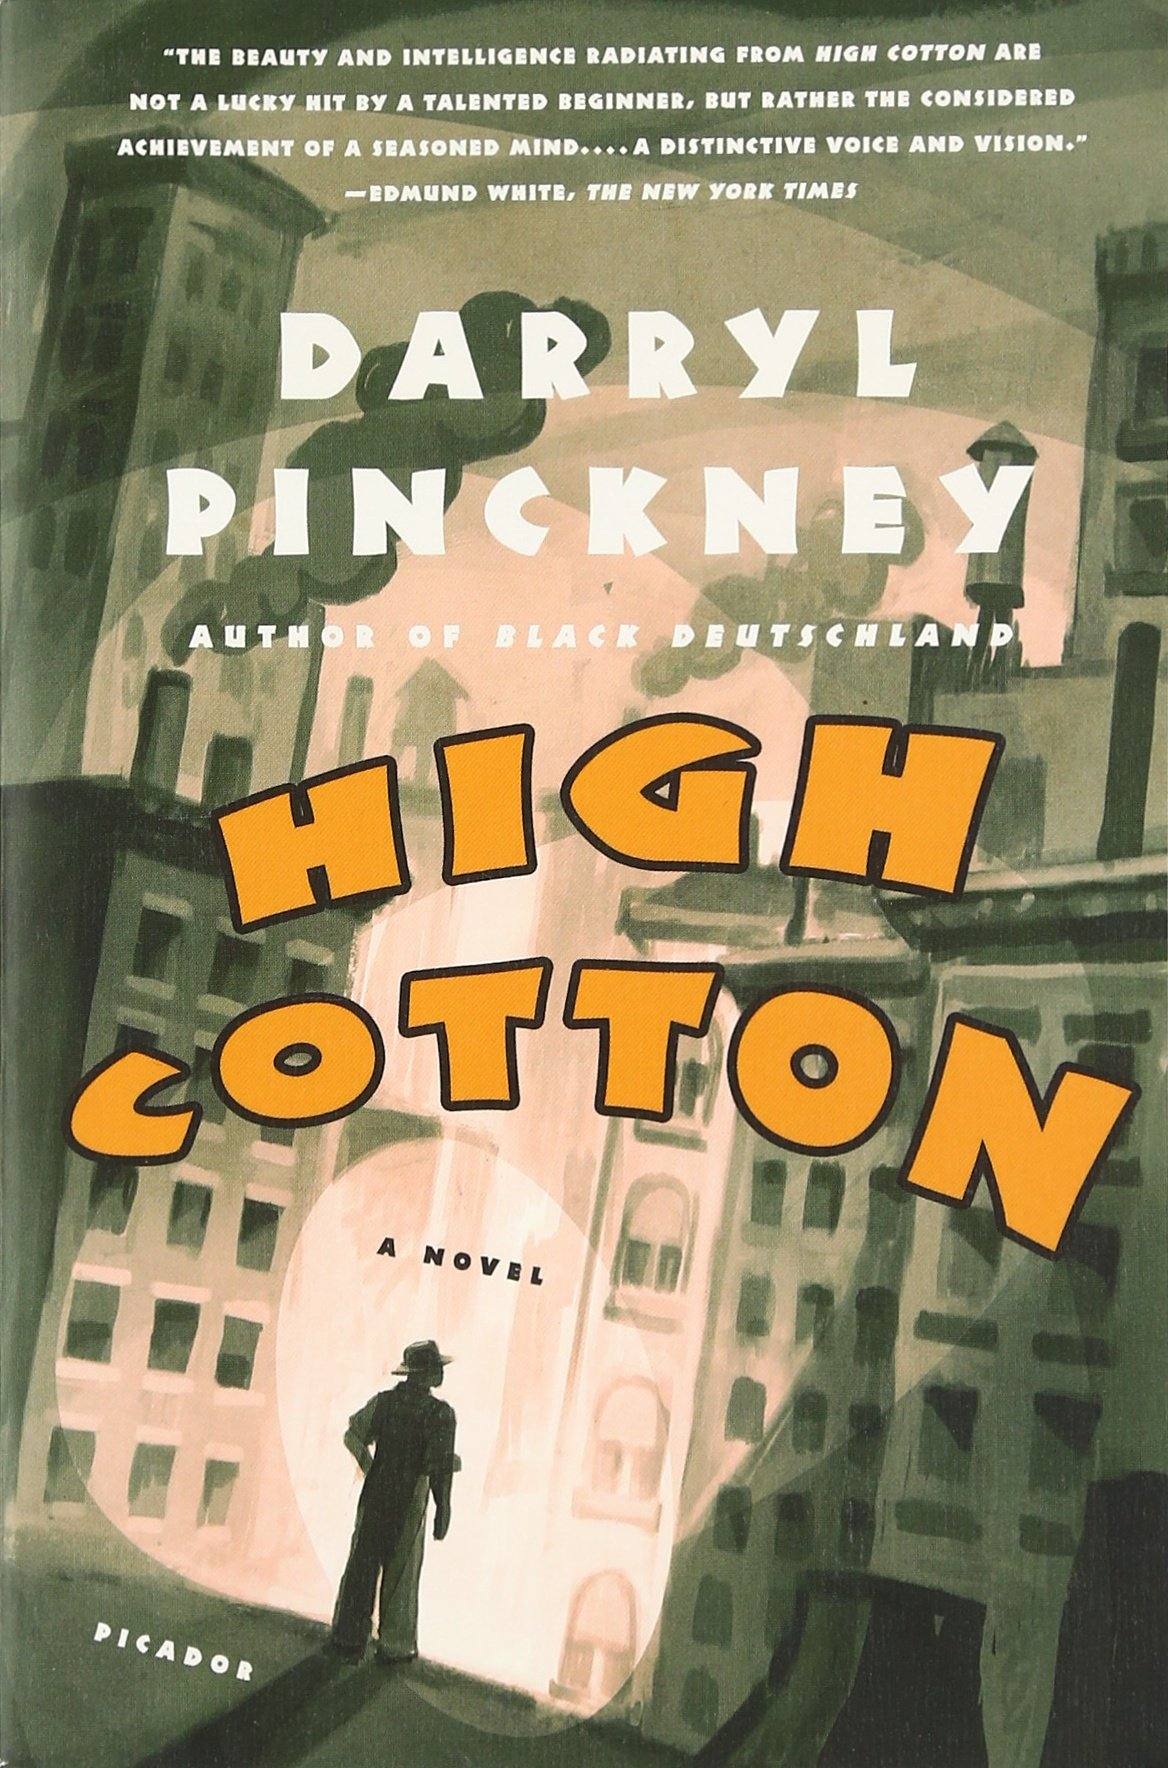 High Cotton Novel Darryl Pinckney product image